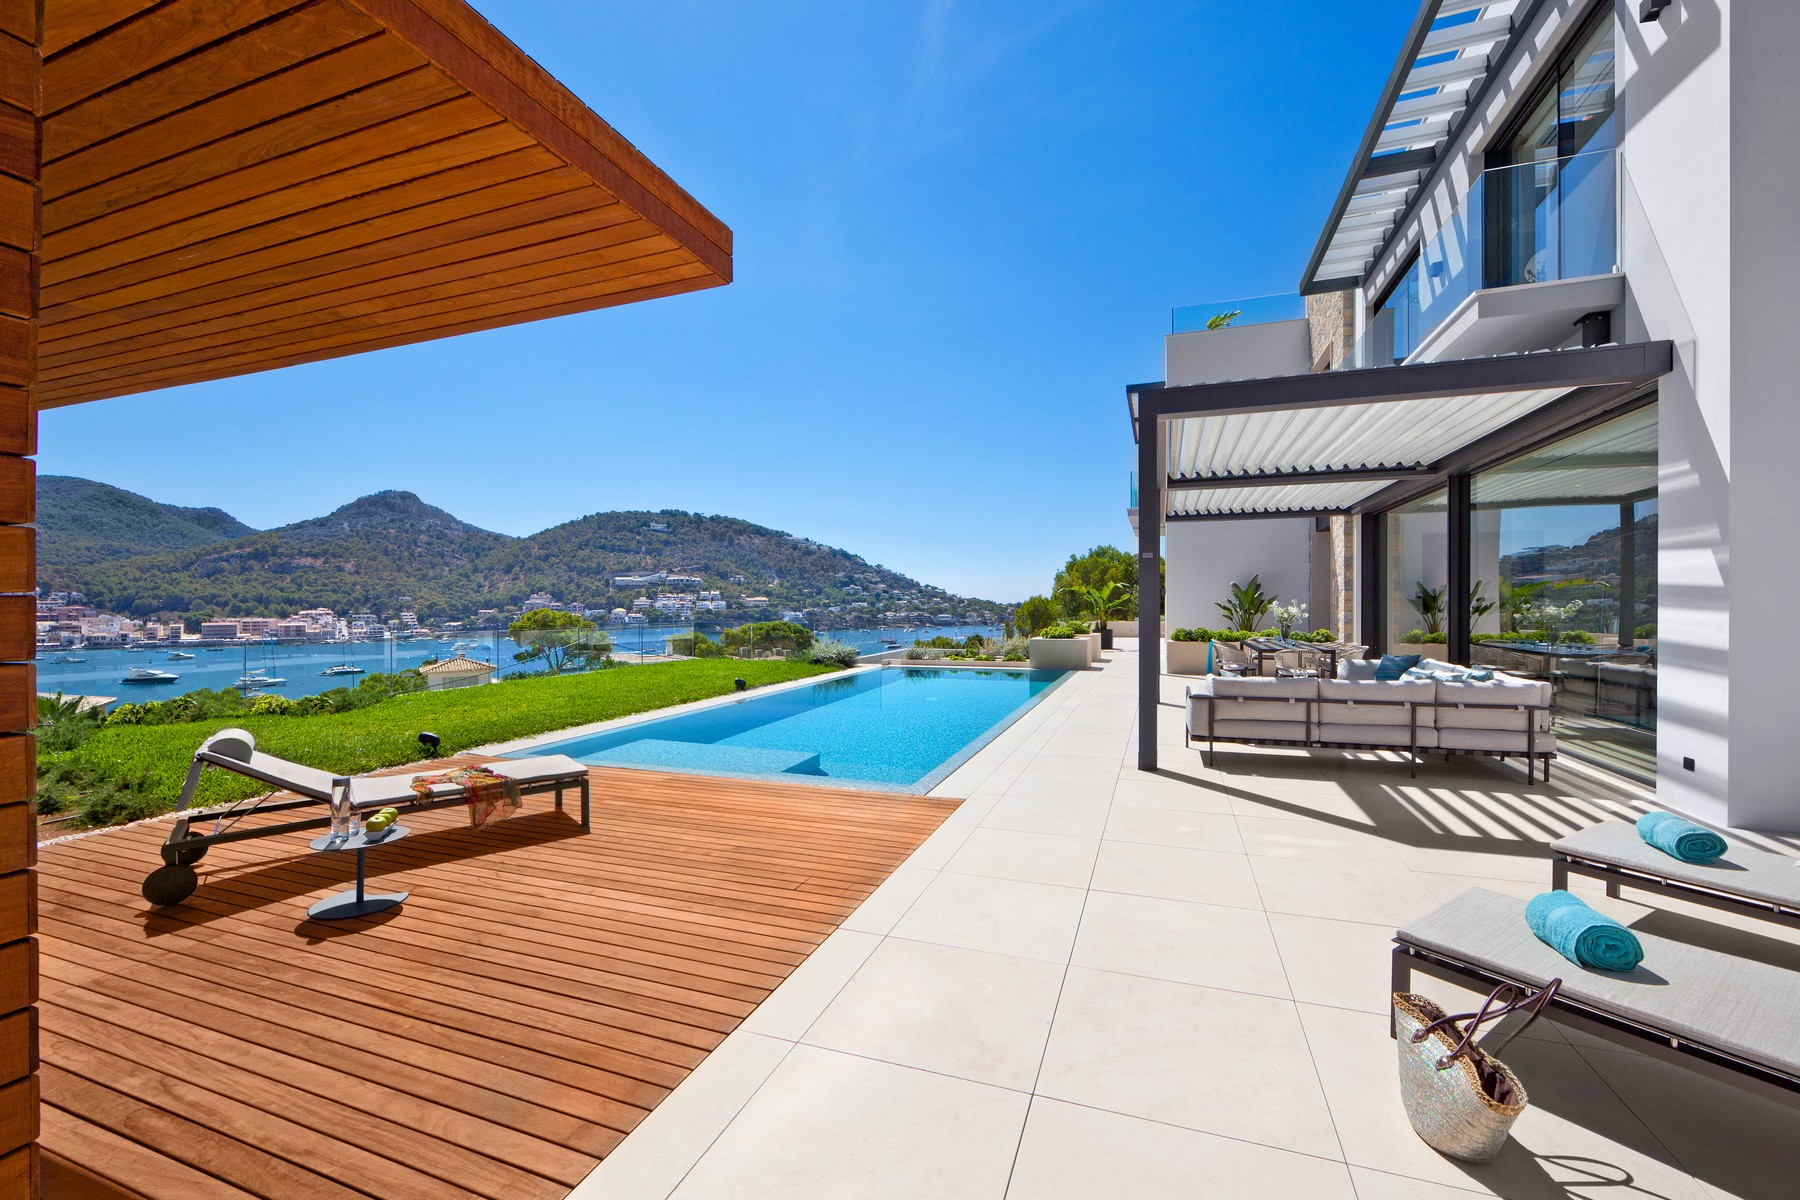 Single Family Home for Sale at Villa with view to Puerto de Andratx Port Andratx, Mallorca, 07157 Spain